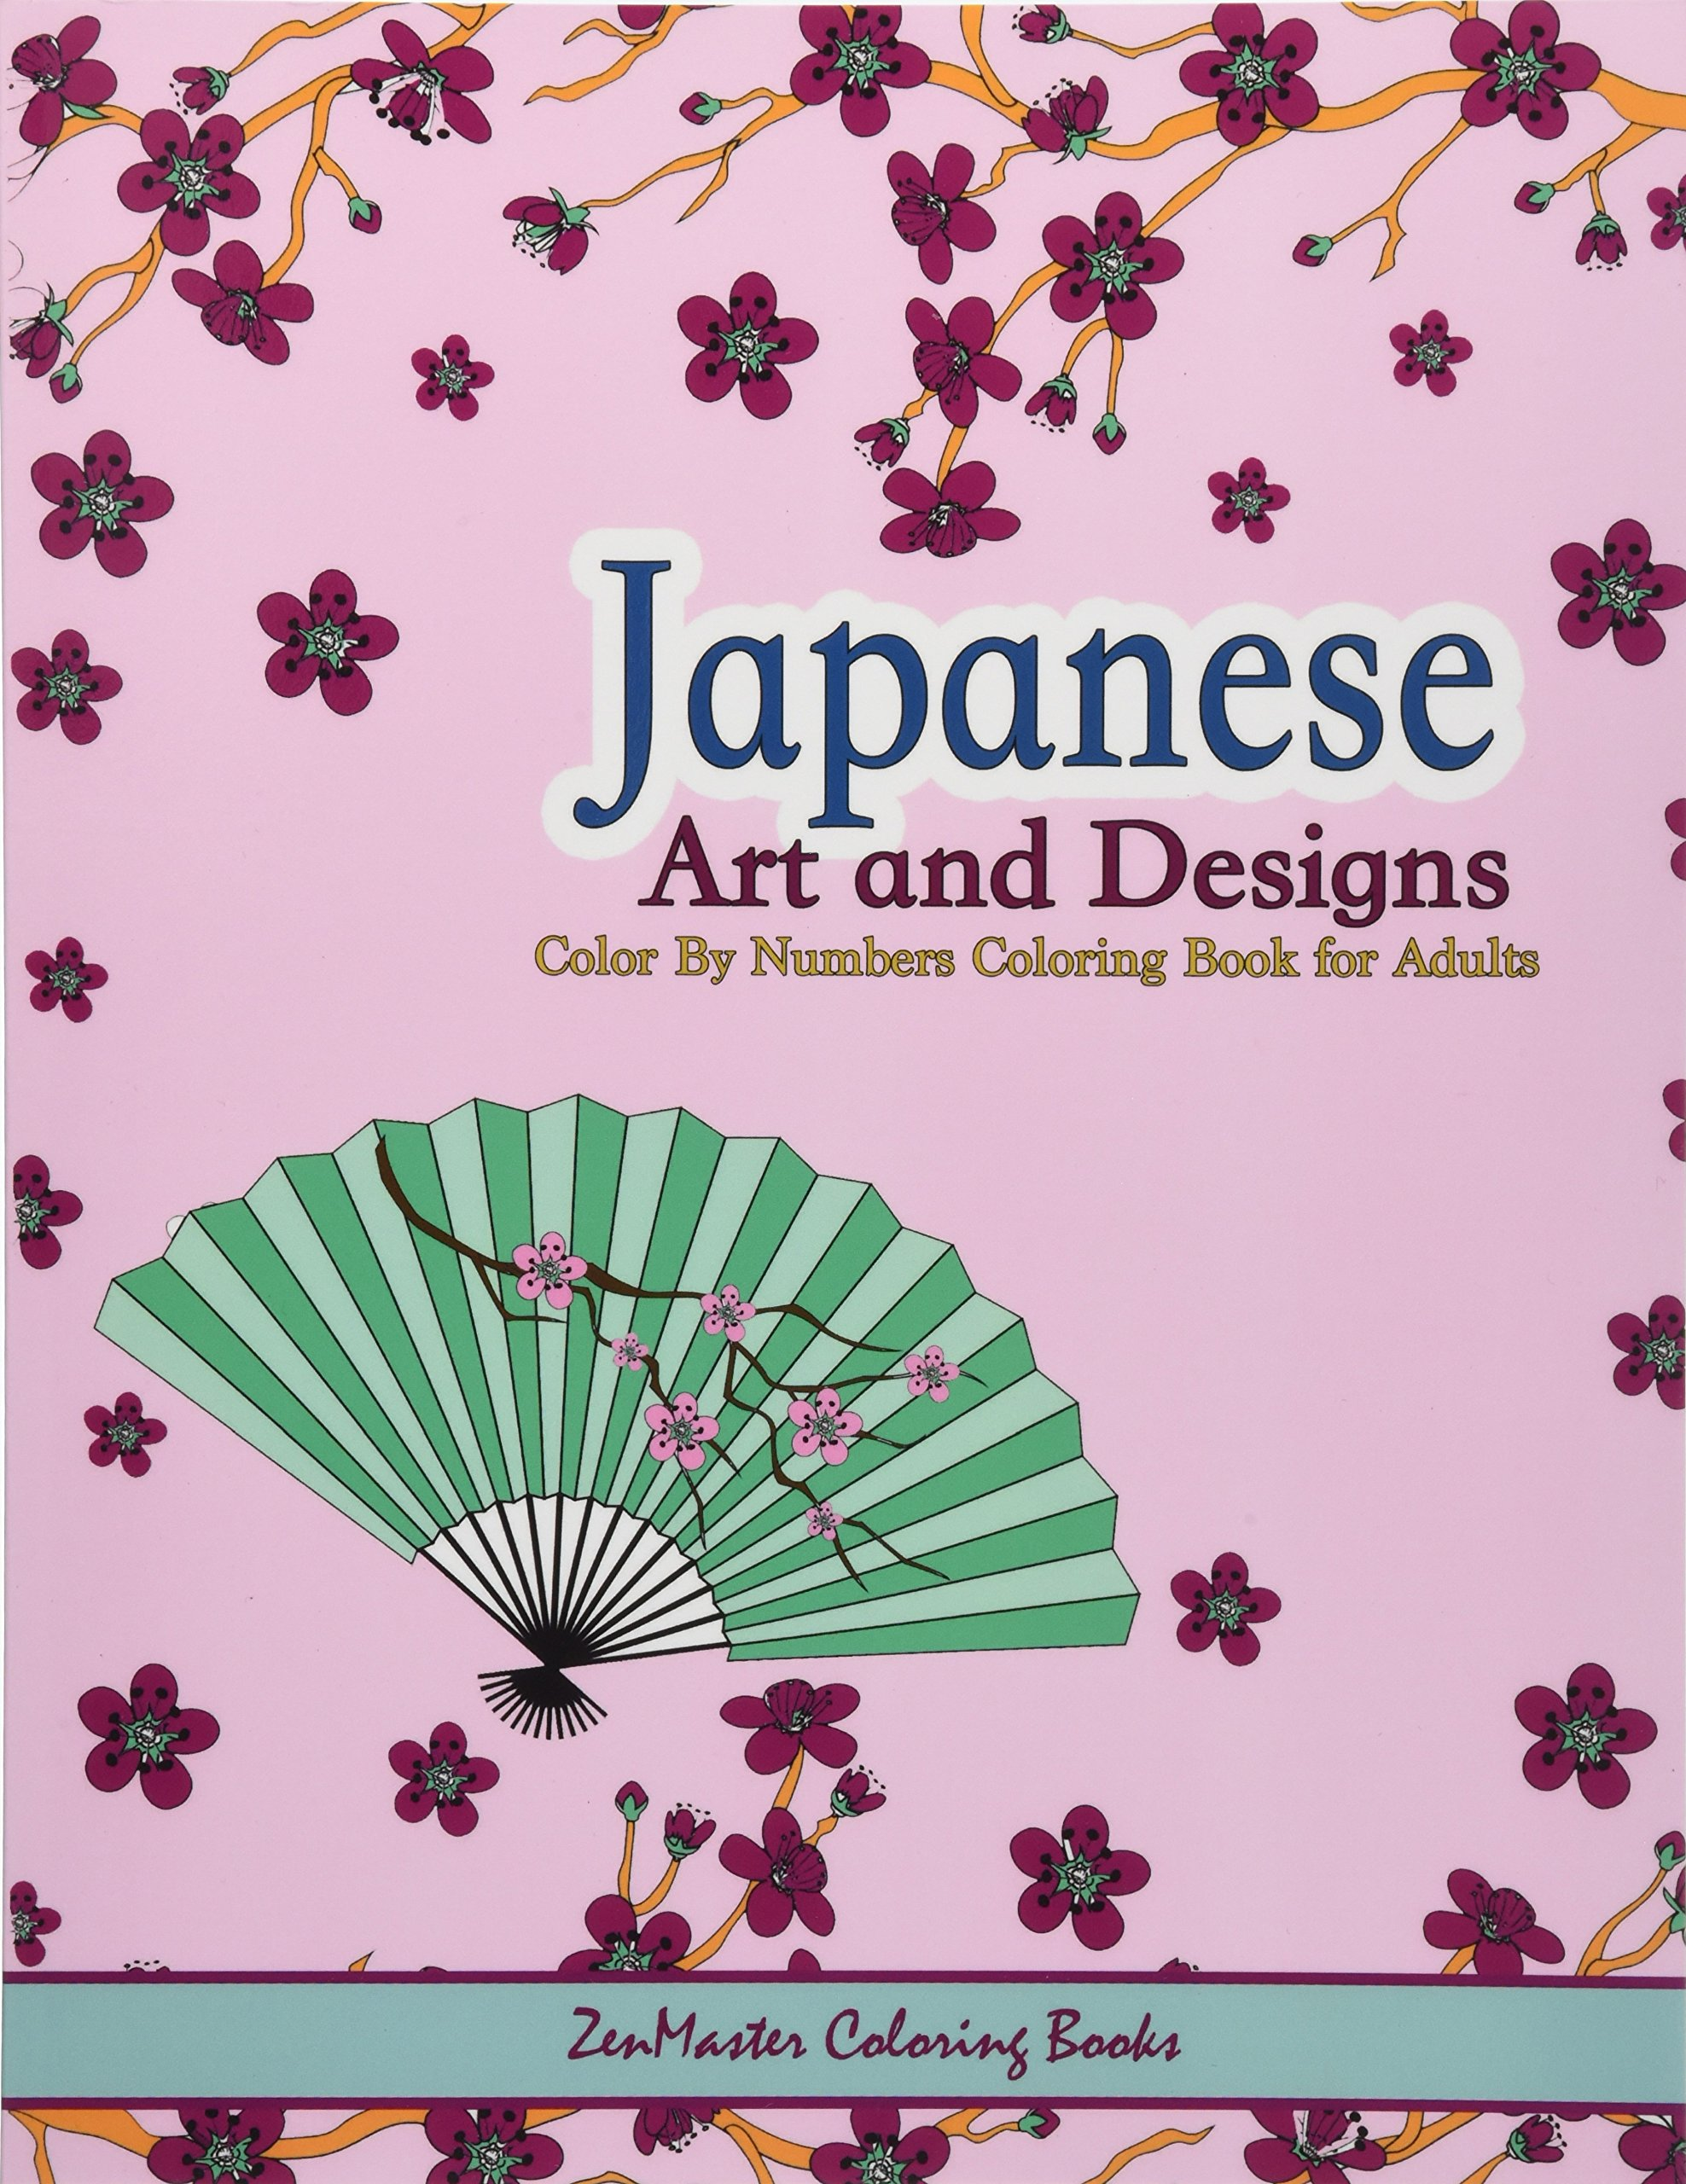 amazon japanese art and designs color by numbers coloring book for